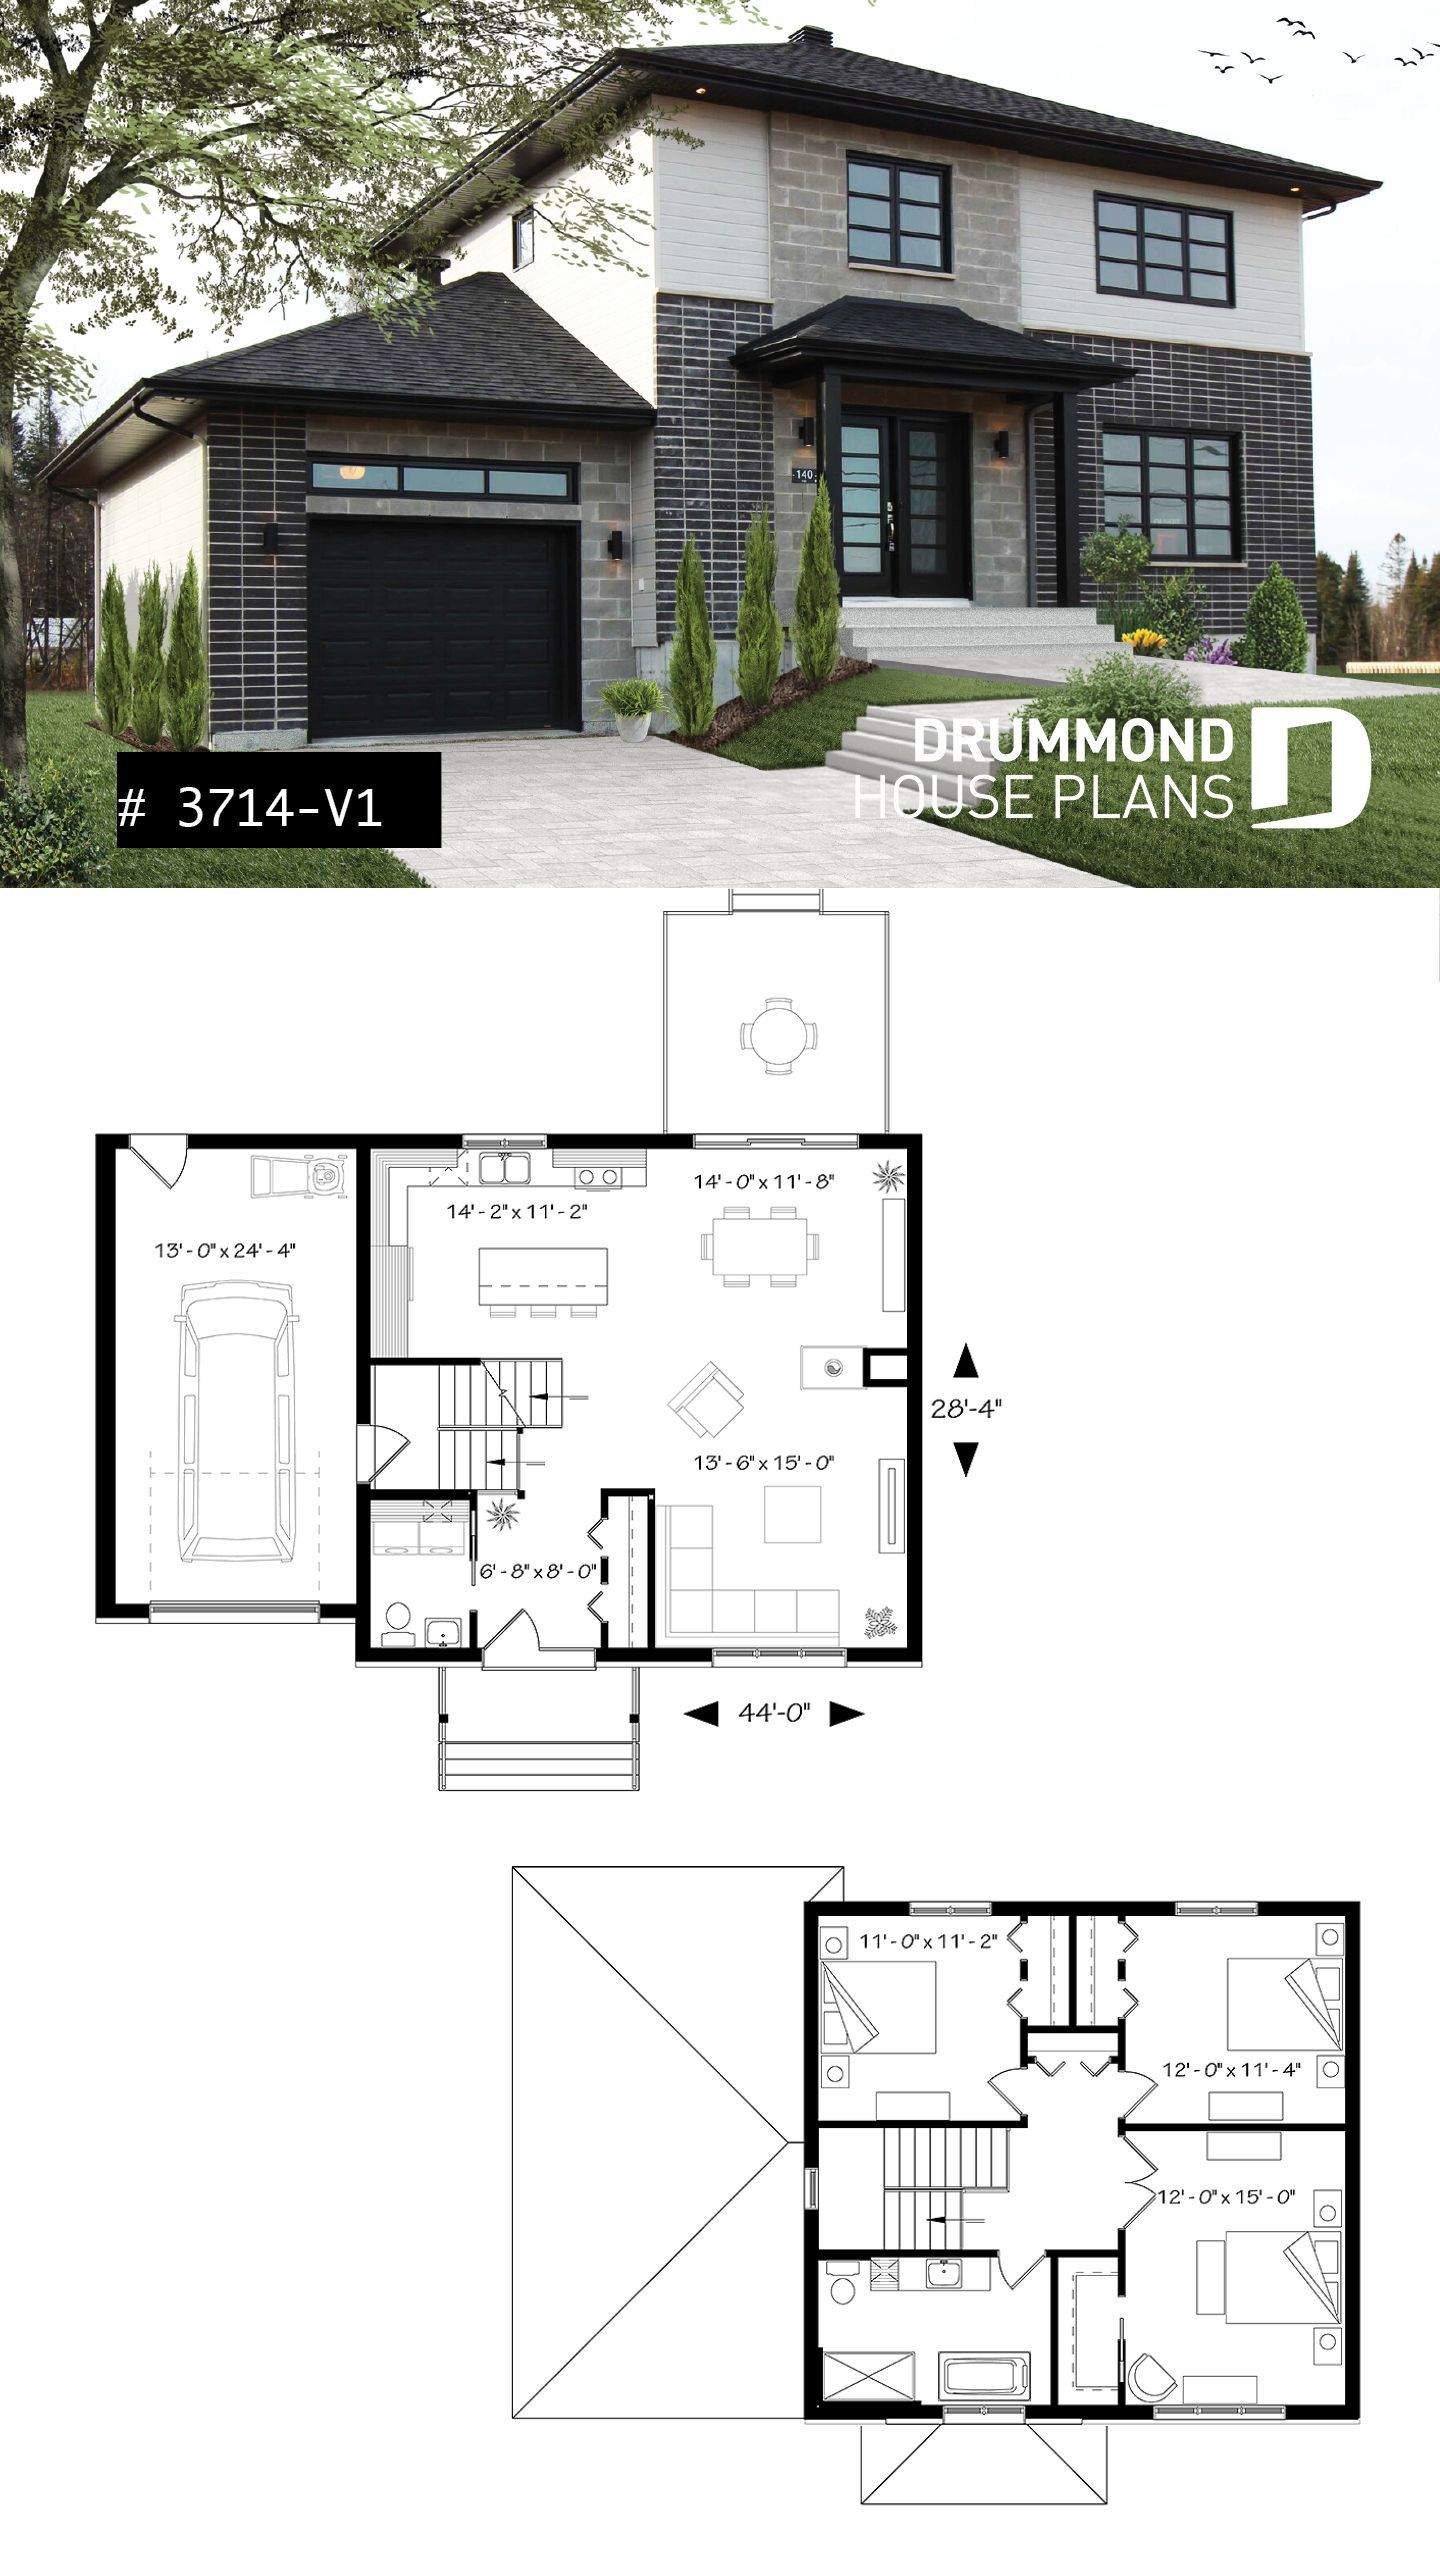 Fresh Mid Century Modern House Plans Two Story House Plan Altair 2 No 3714 V1 In 2020 Modern House Plans Contemporary House Plans House Plans